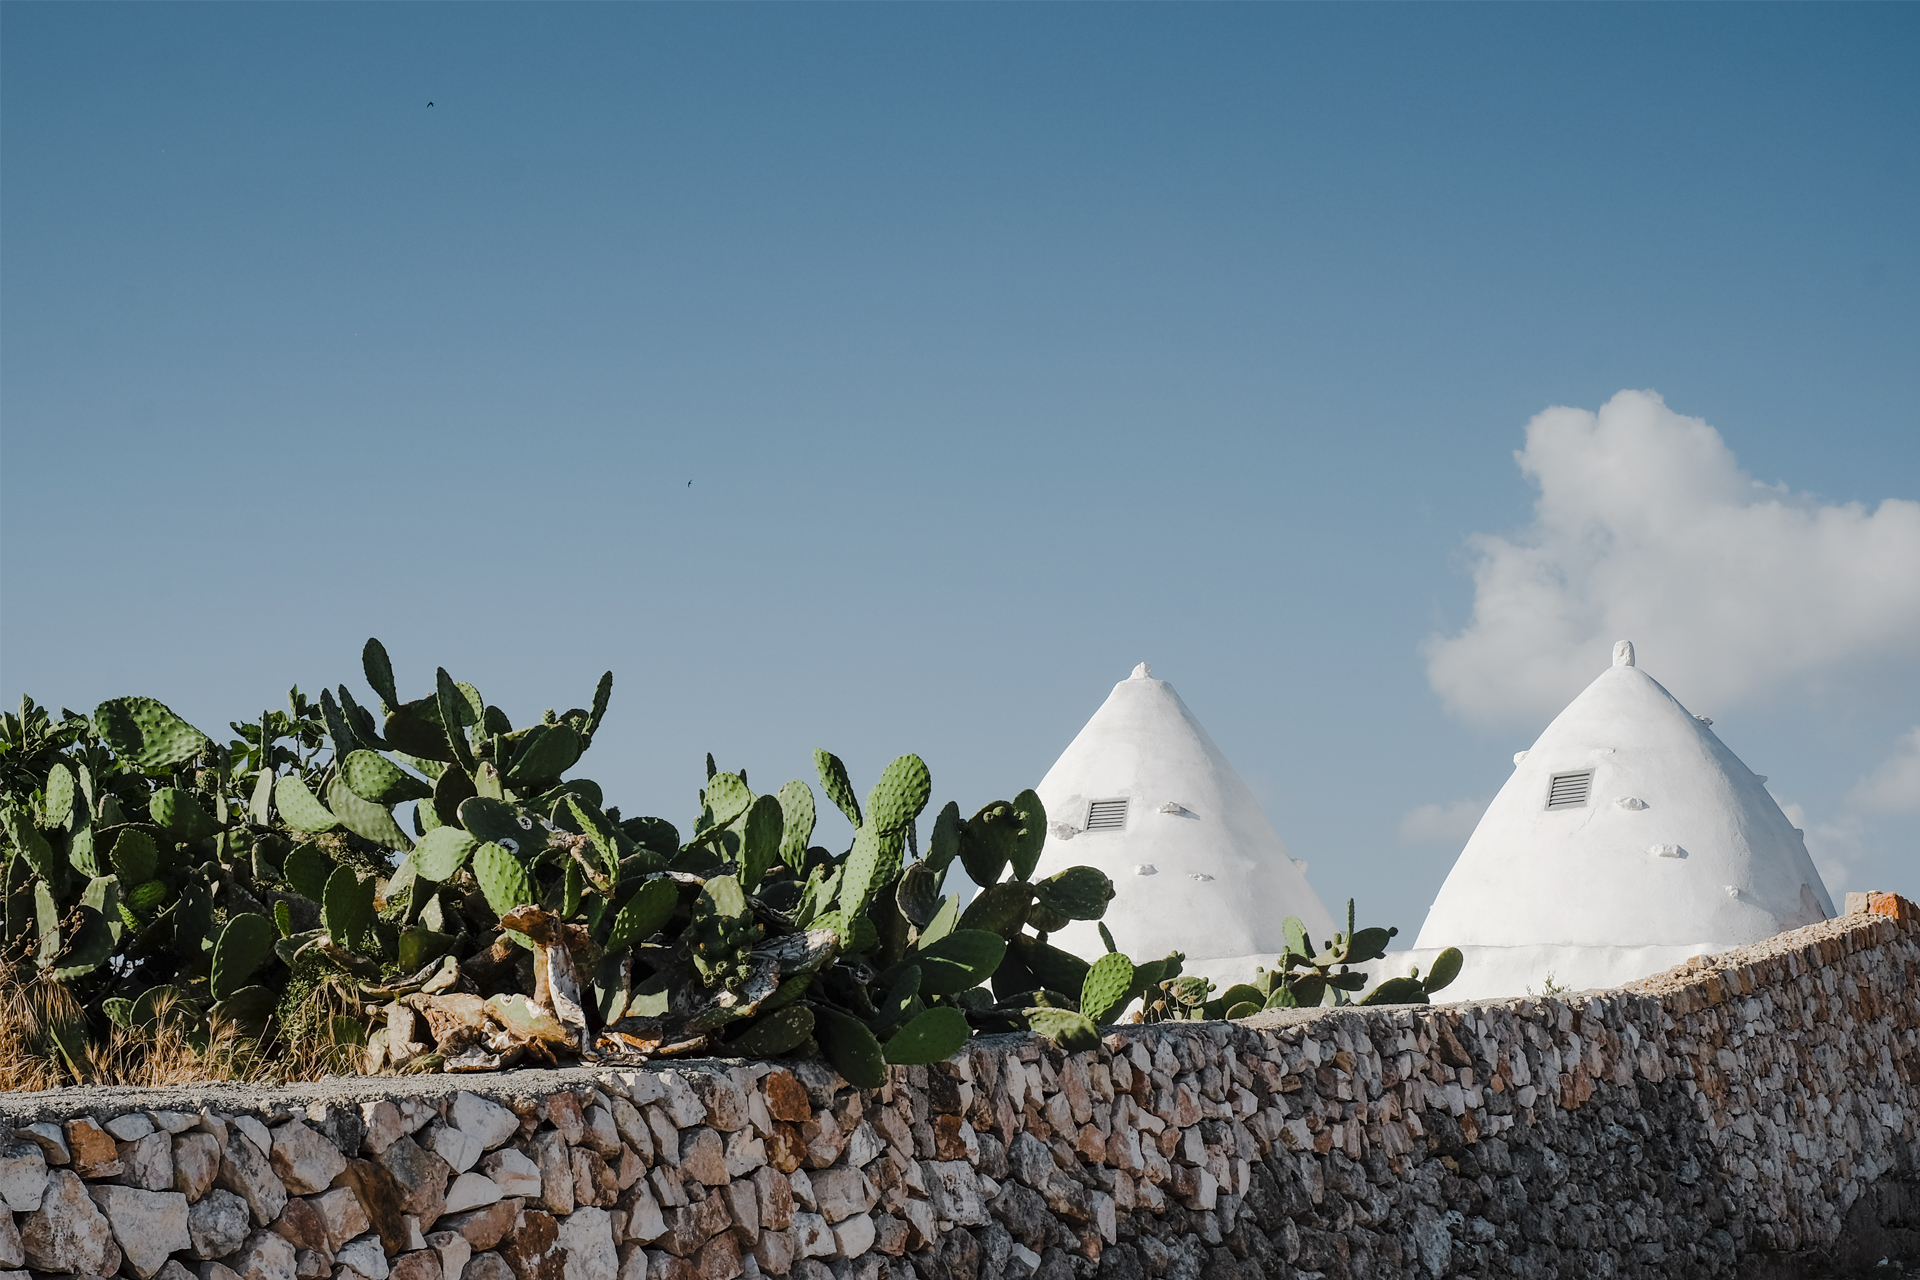 Typical White buildings of Puglia next to a cactus